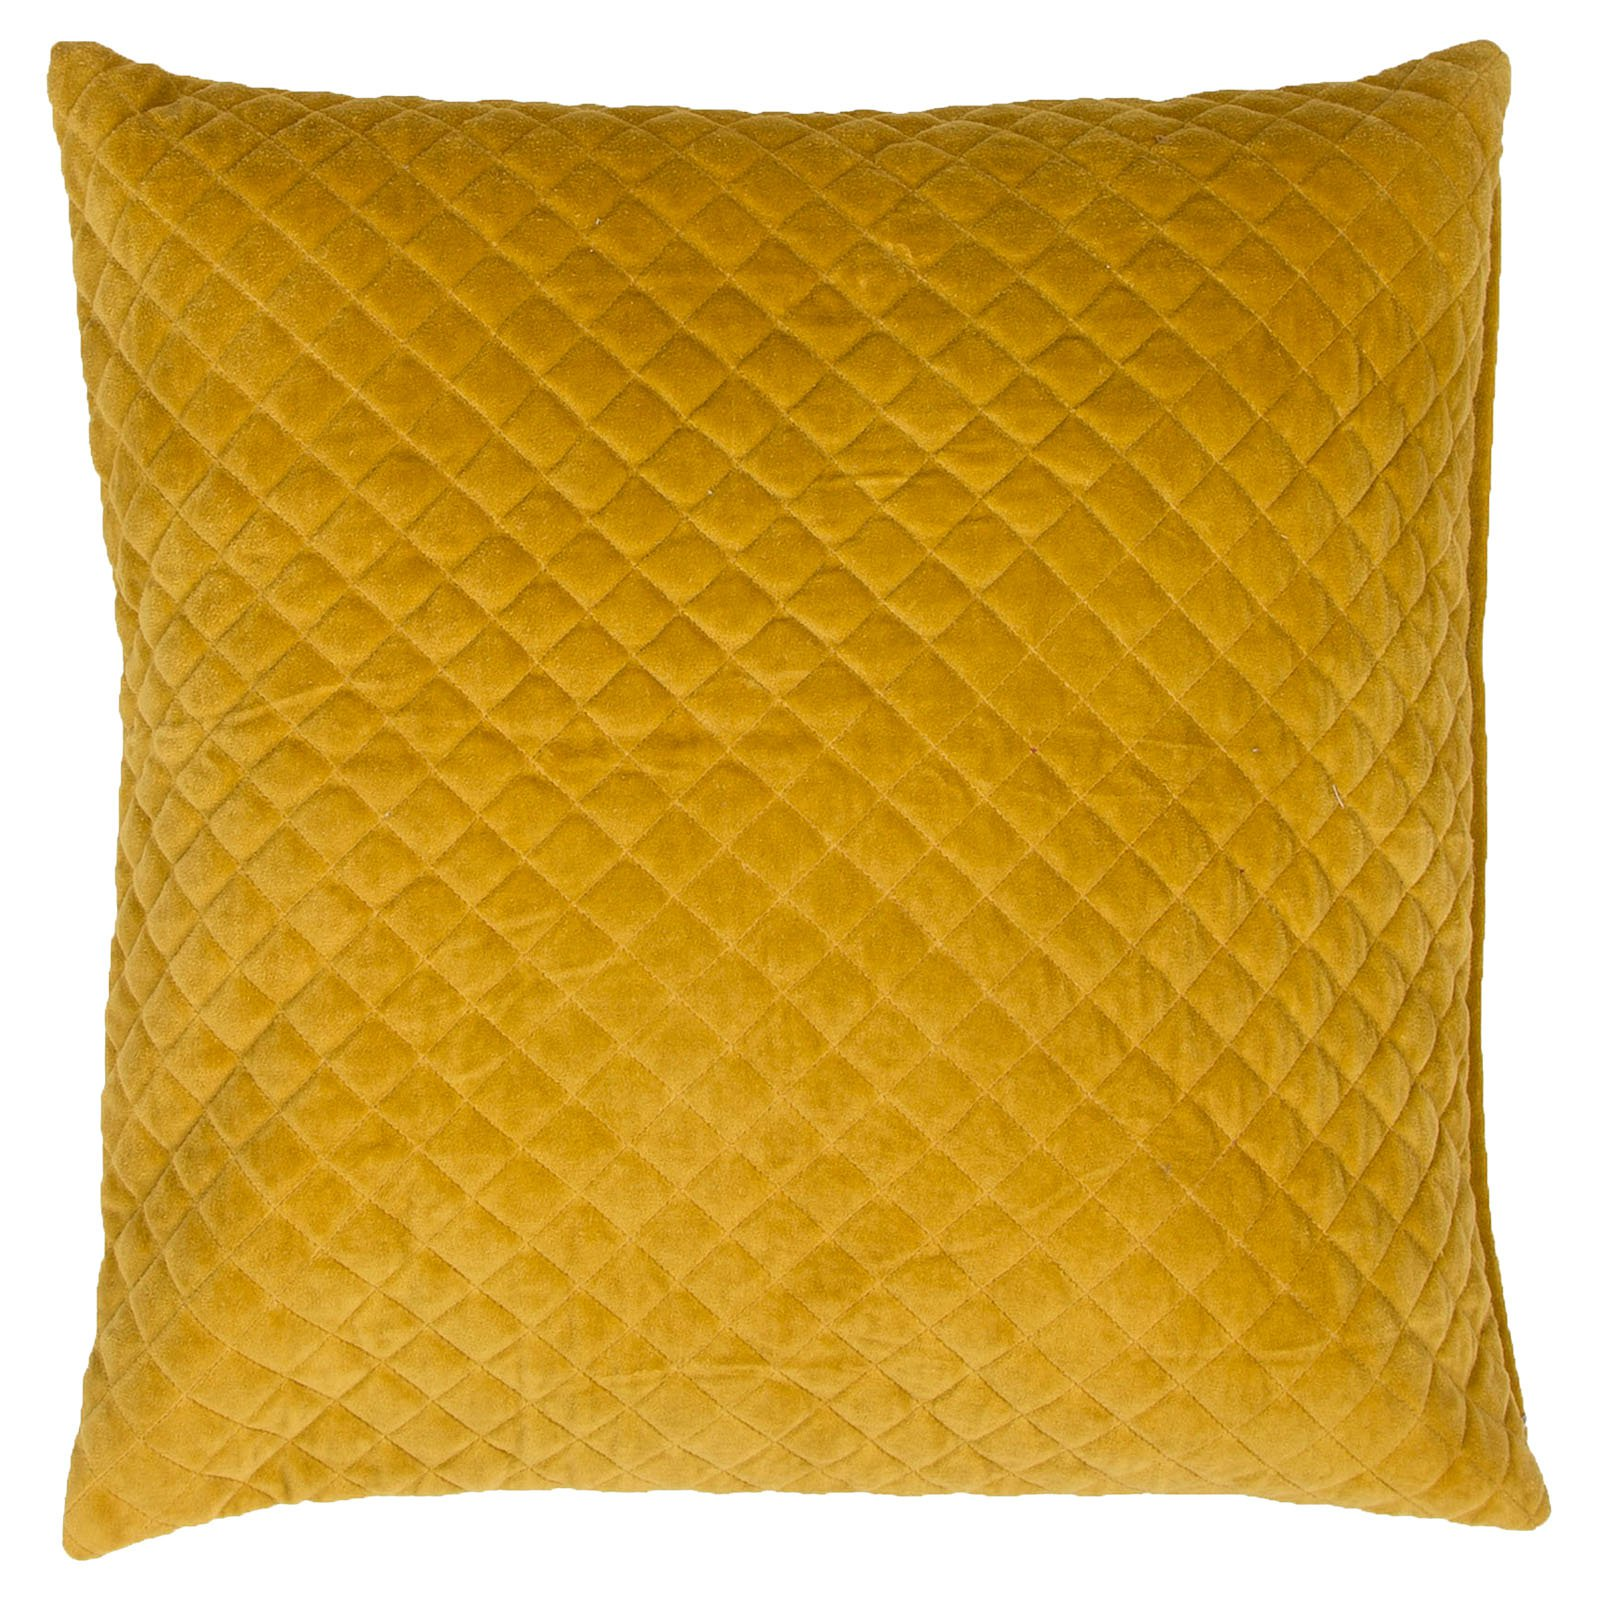 Jaipur Quilted Cotton Decorative Pillow